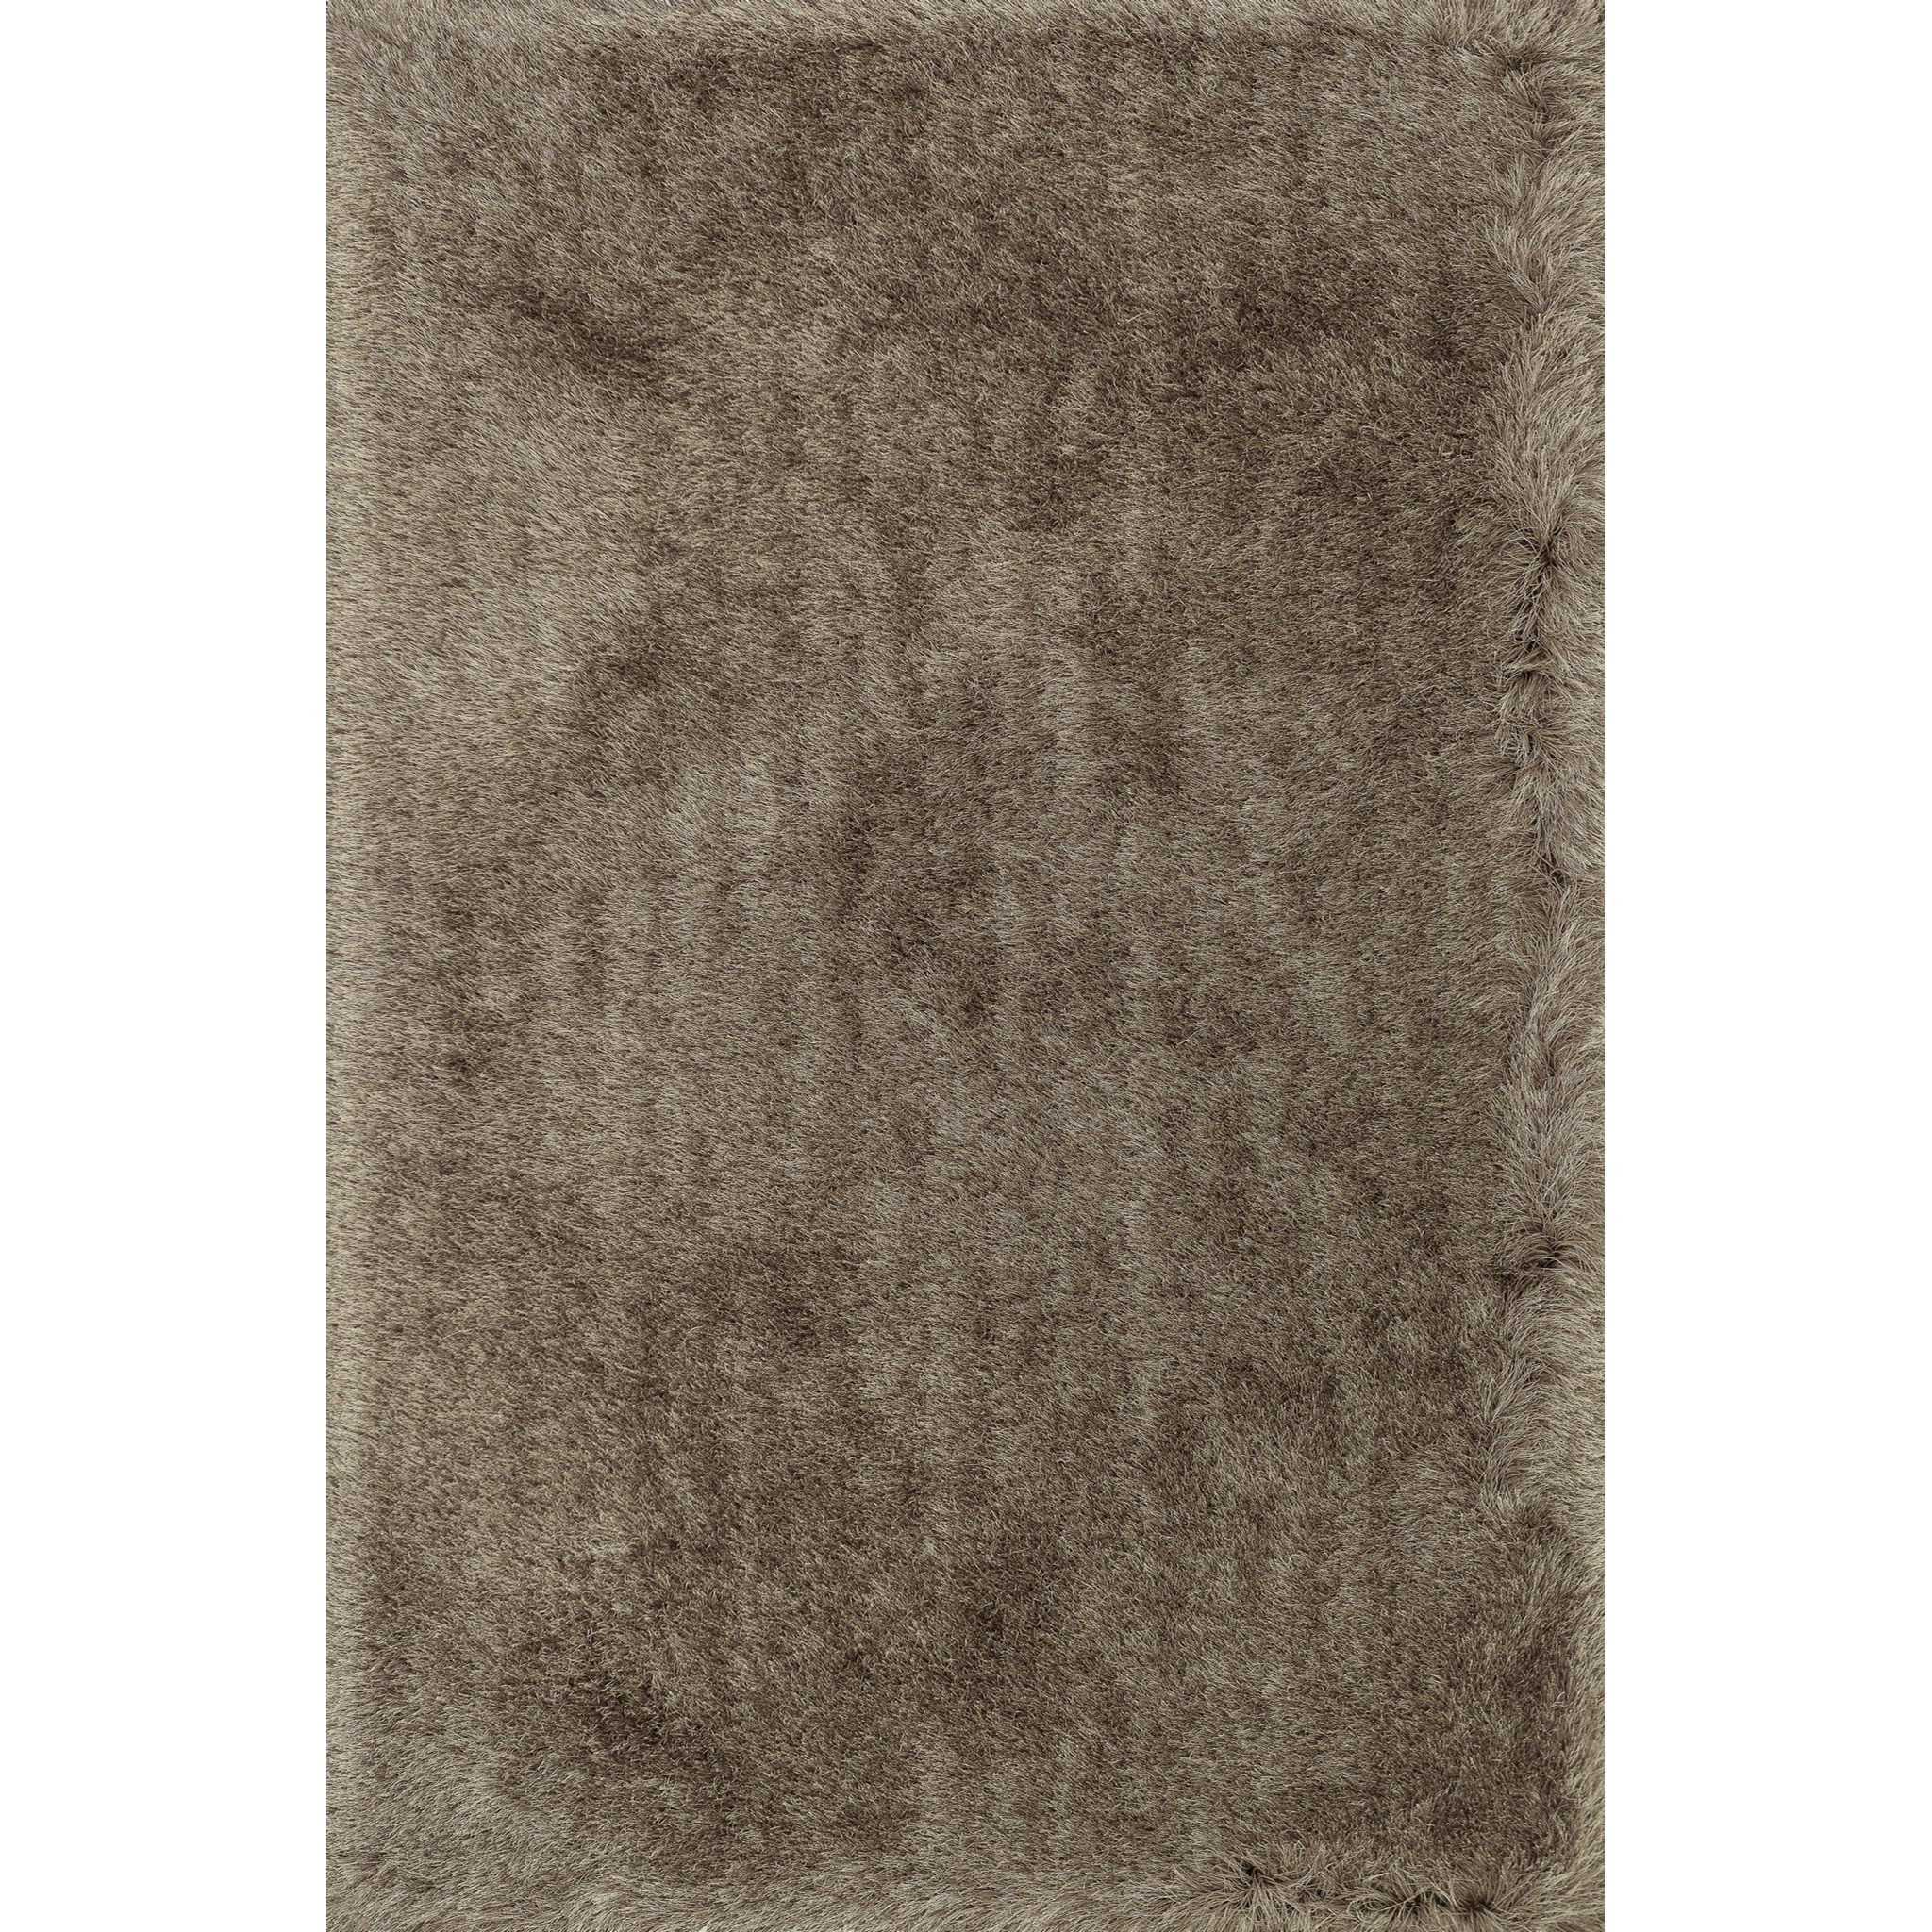 """Allure Shag 9'-3"""" X 13' Area Rug by Loloi Rugs at Virginia Furniture Market"""